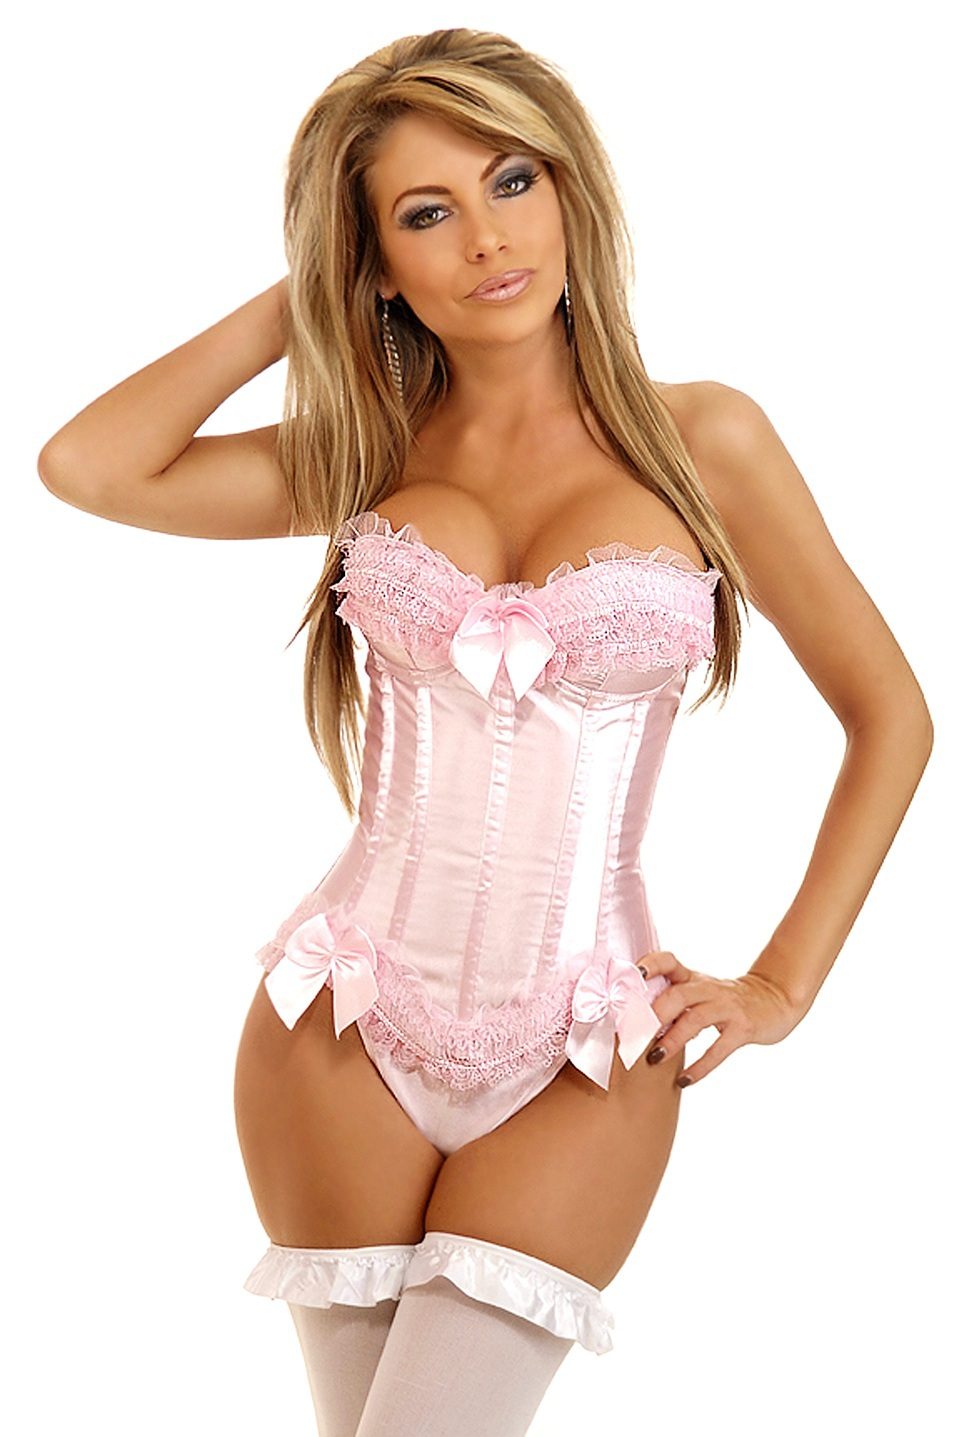 Shop all Corsets and Bustiers from Victoria's Secret. Sexy Lingerie for any occasion. Only at Victoria's Secret. Skip to main content. Victoria's Secret. Victoria's Secret PINK. Victoria Sport. FREE 2-DAY SHIPPING ON $ Limited Time! Code SHIP2DAY. Details. The Angel Card. Get The Angel Card Get Love It CORSETS & BUSTIERS.